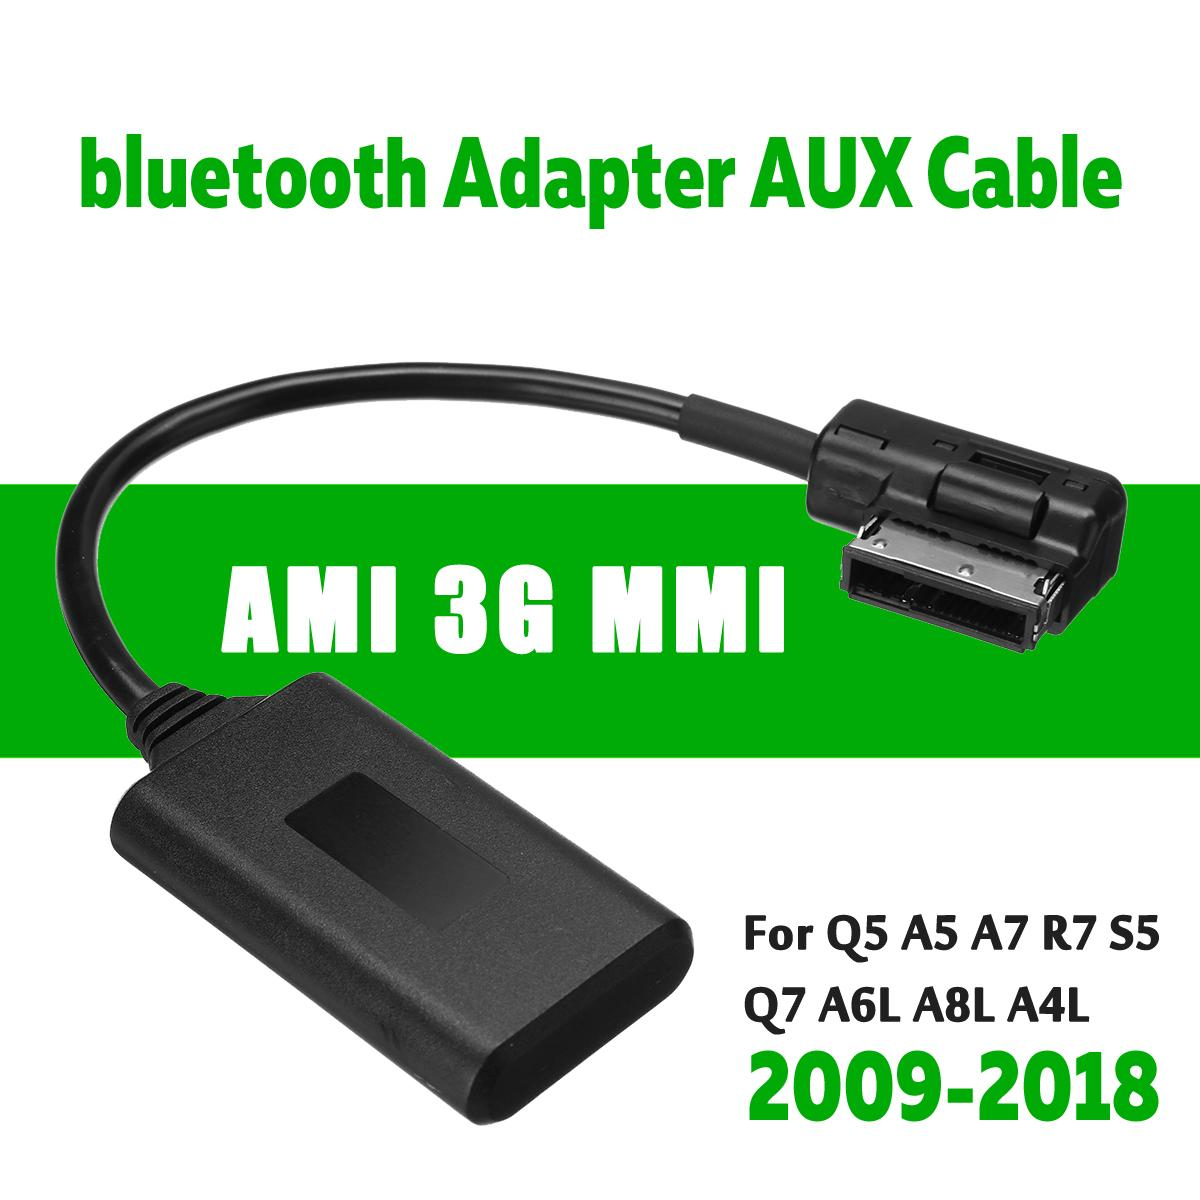 AMI MMI bluetooth Module Adapter Aux Cable Wireless Audio Input Aux Radio Media Interface For Audi Q5 A5 A7 R7 S5 Q7 A6L A8L A4L(China)